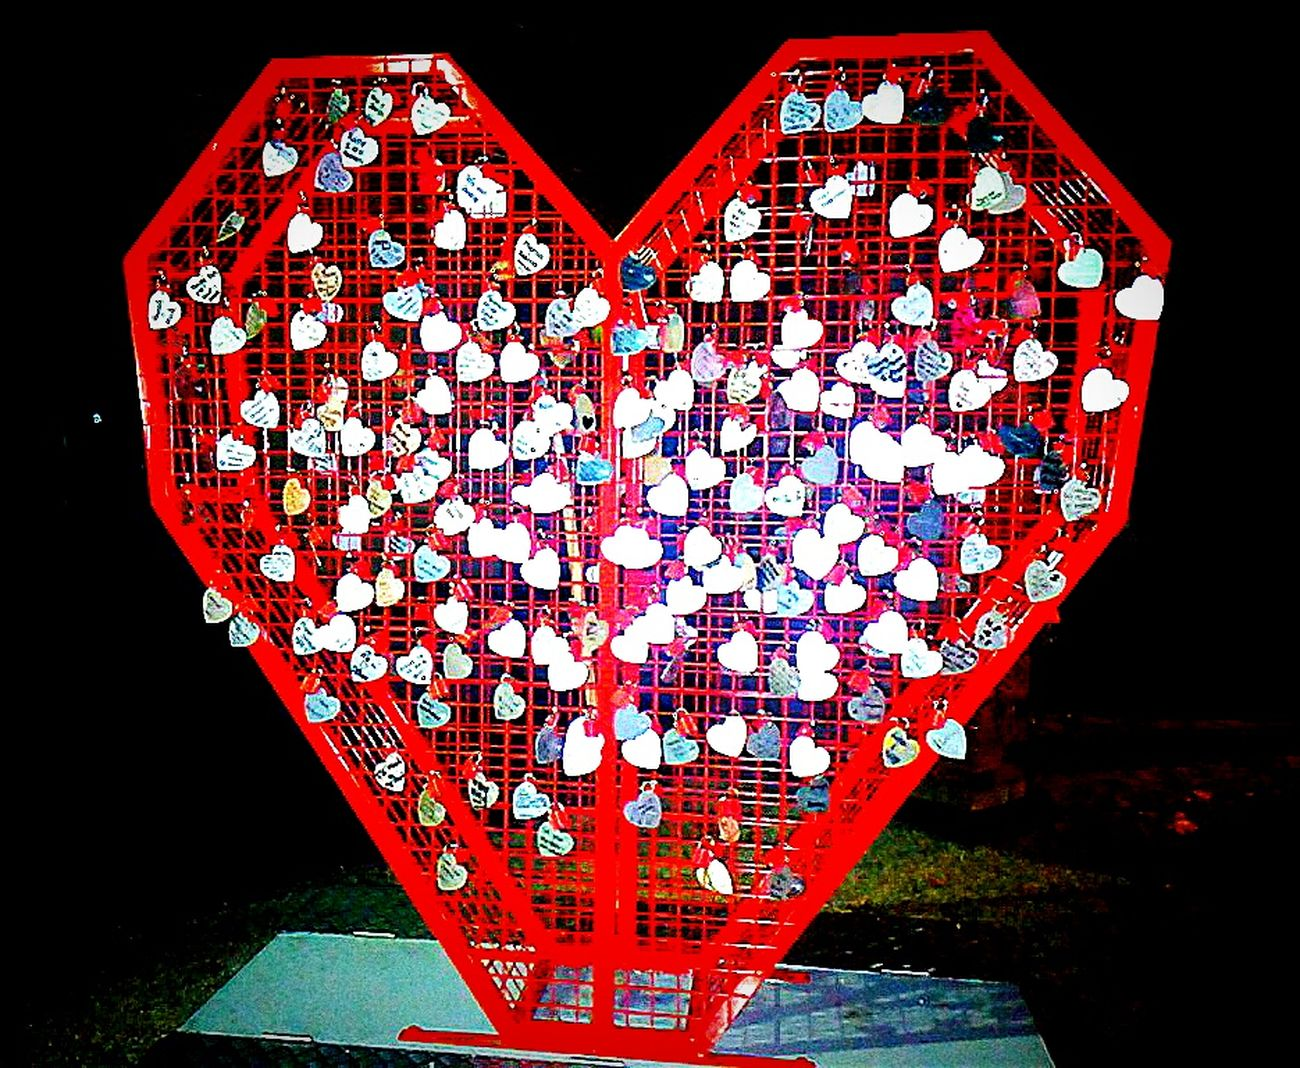 Heart Big Heart Love Heartshape Heart Shaped  Taking Photos OpenEdit Sculpture Creative Artwork Streetphotography